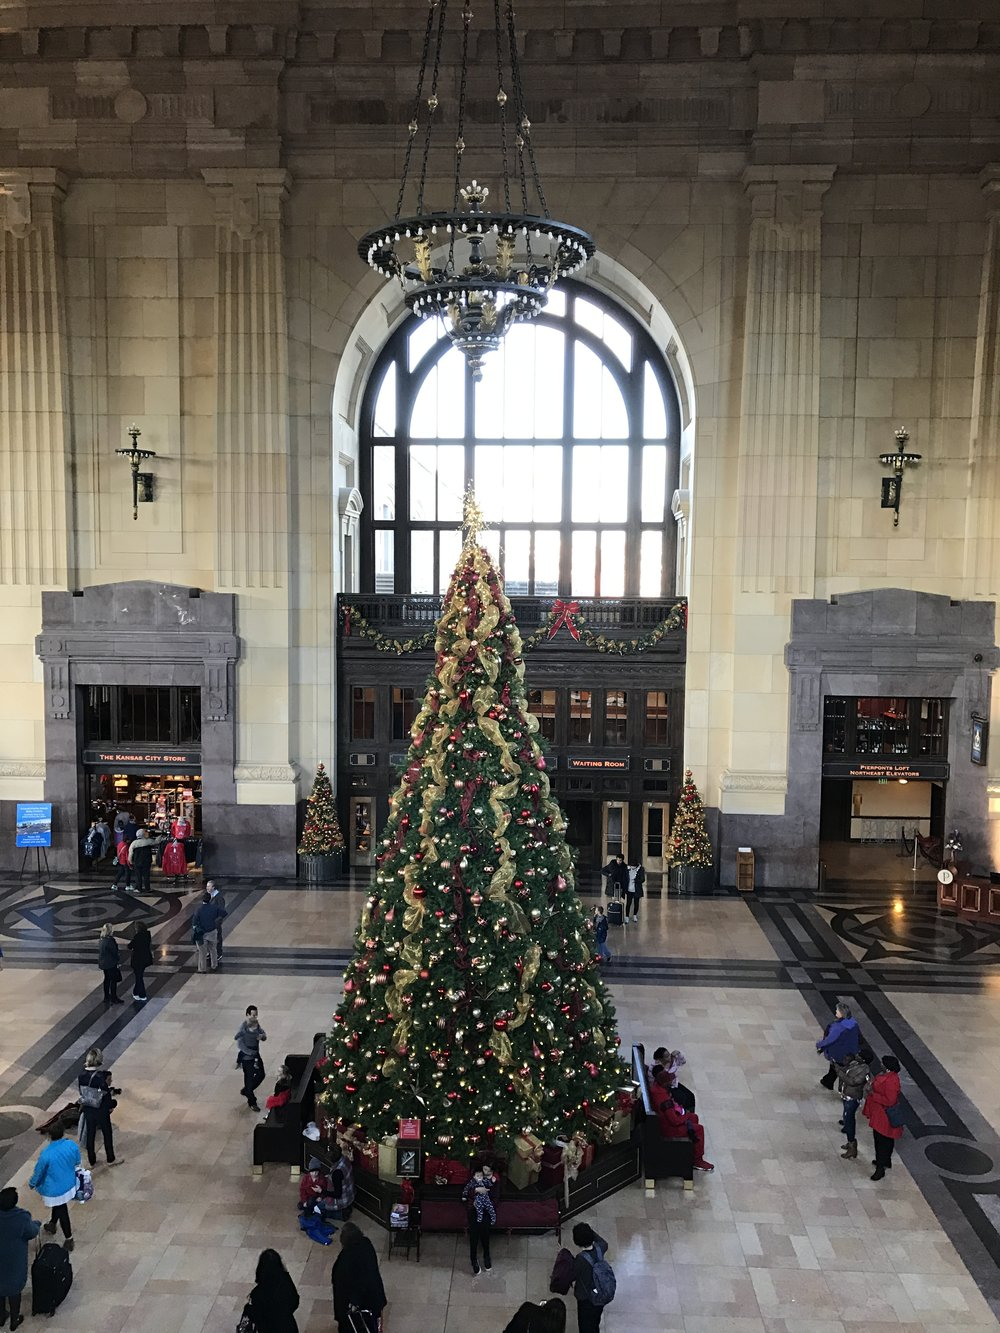 Giant Christmas tree in the lobby